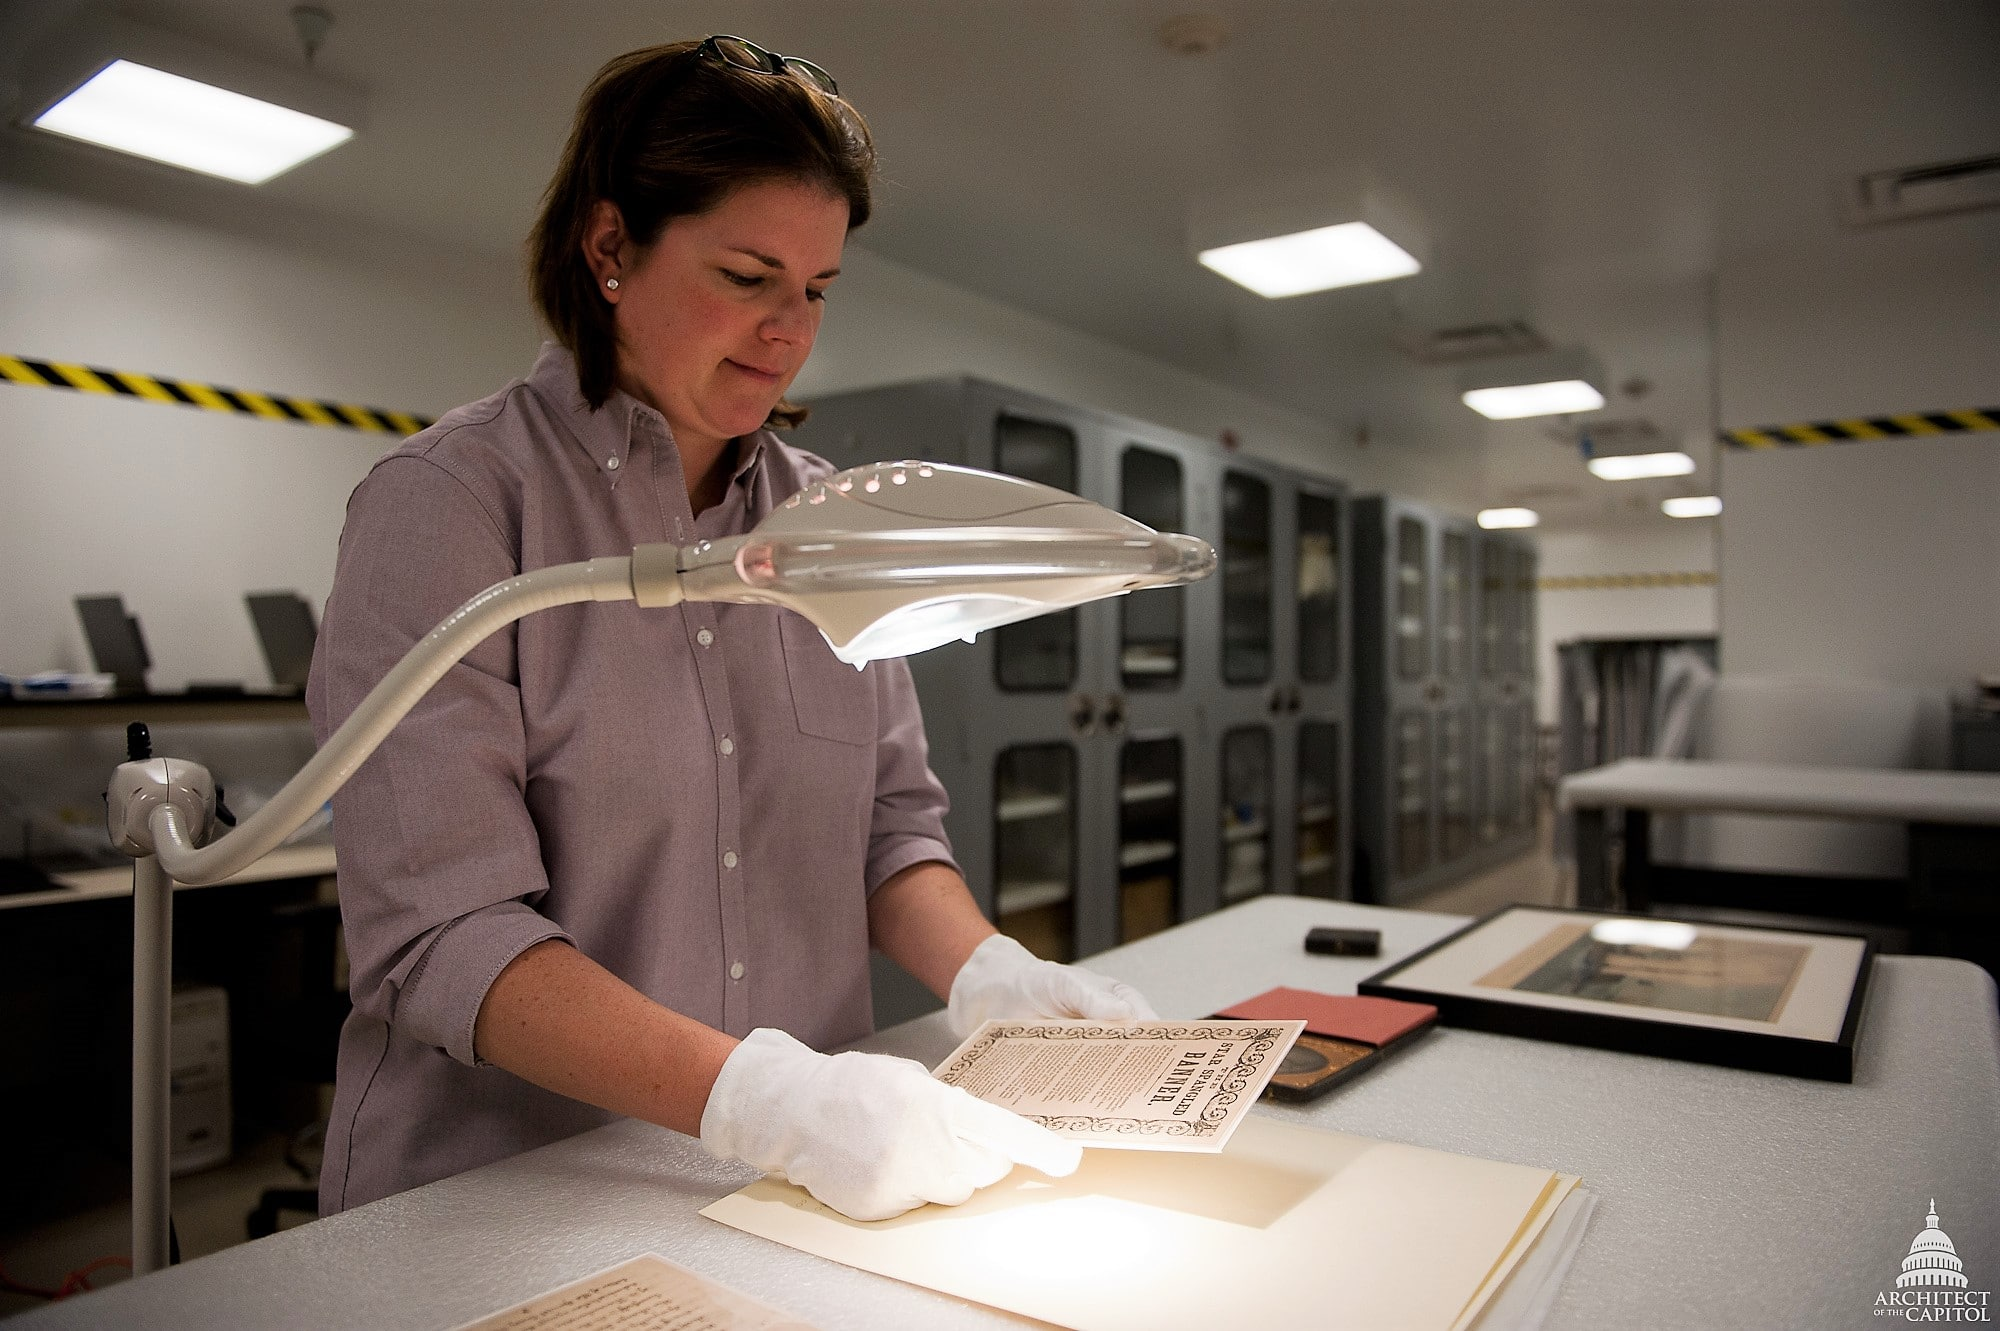 woman working on restoring documents